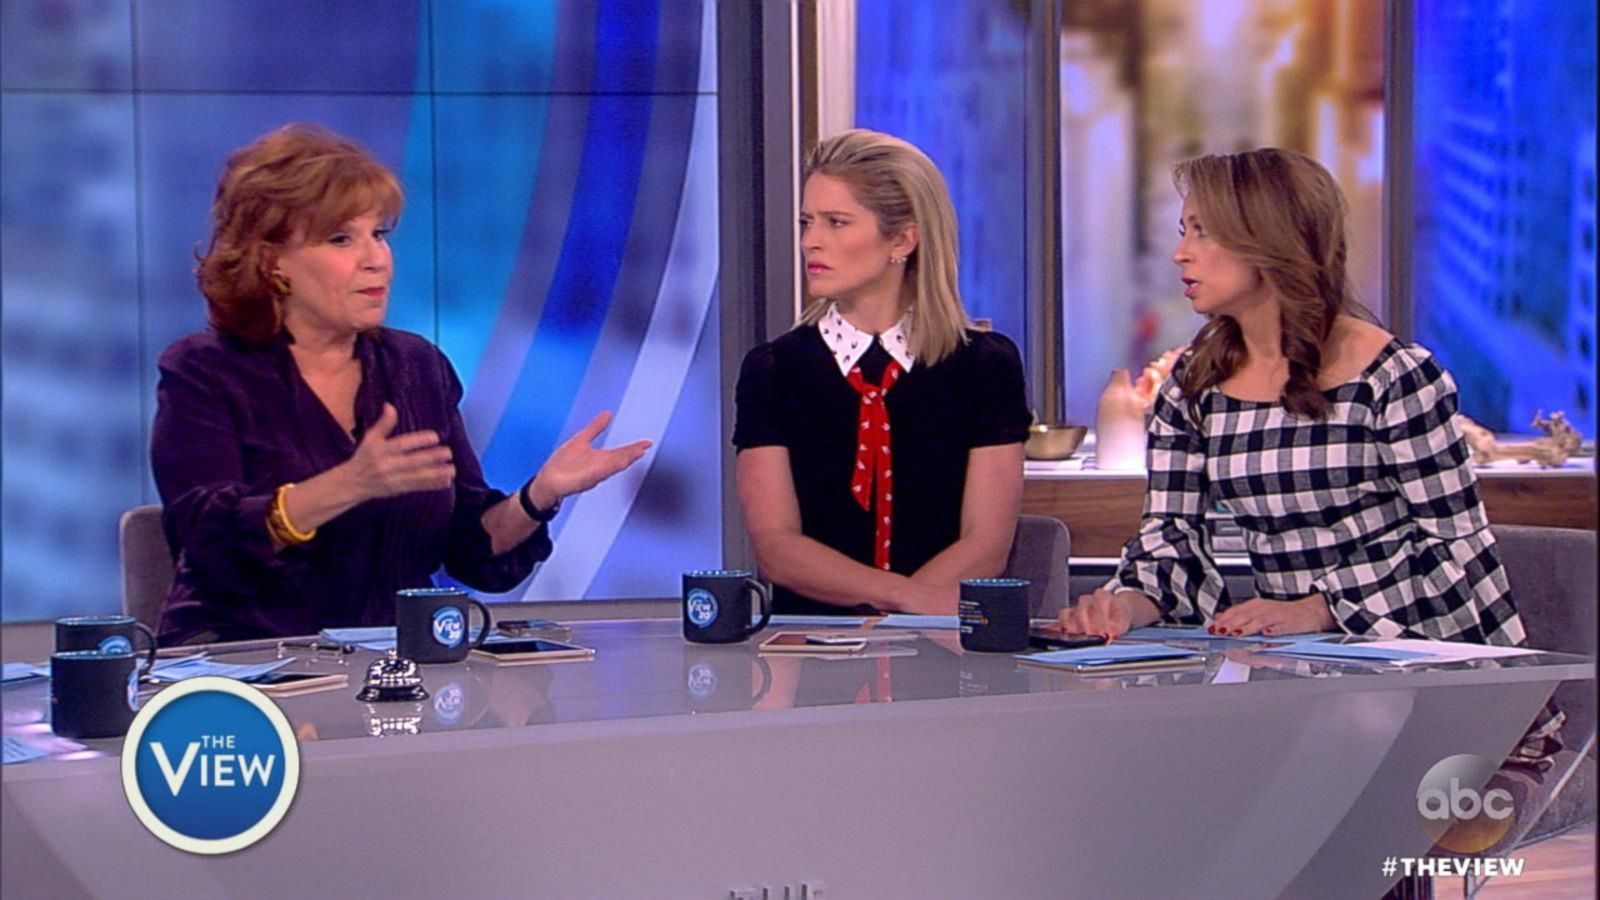 VIDEO: Does Political Correctness Cause More Harm Than Good?